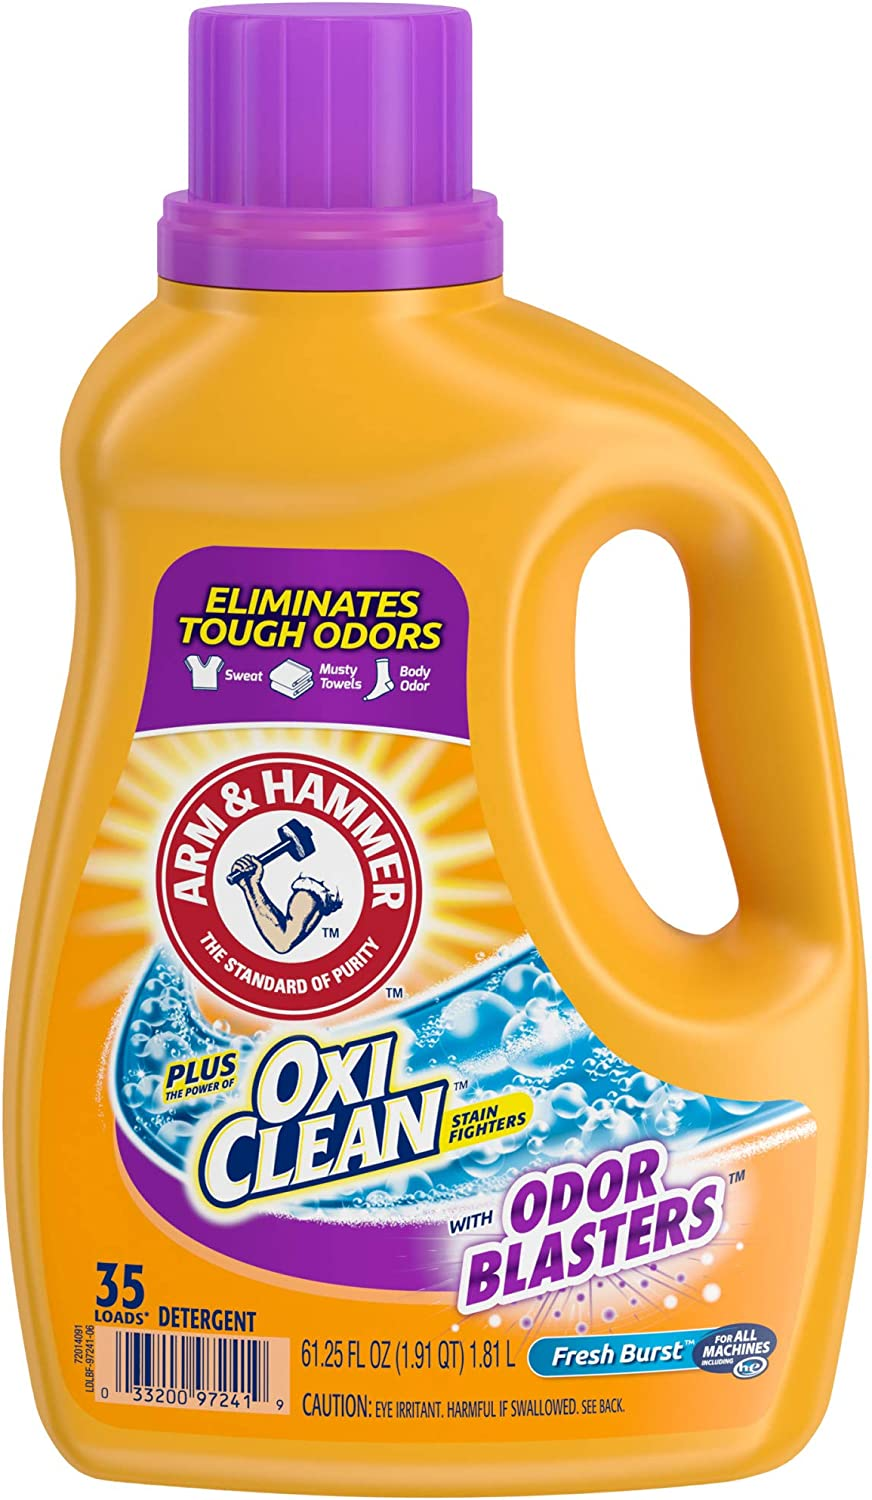 Arm & Hammer Plus OxiClean Odor Blasters Laundry Detergent, 35 Loads